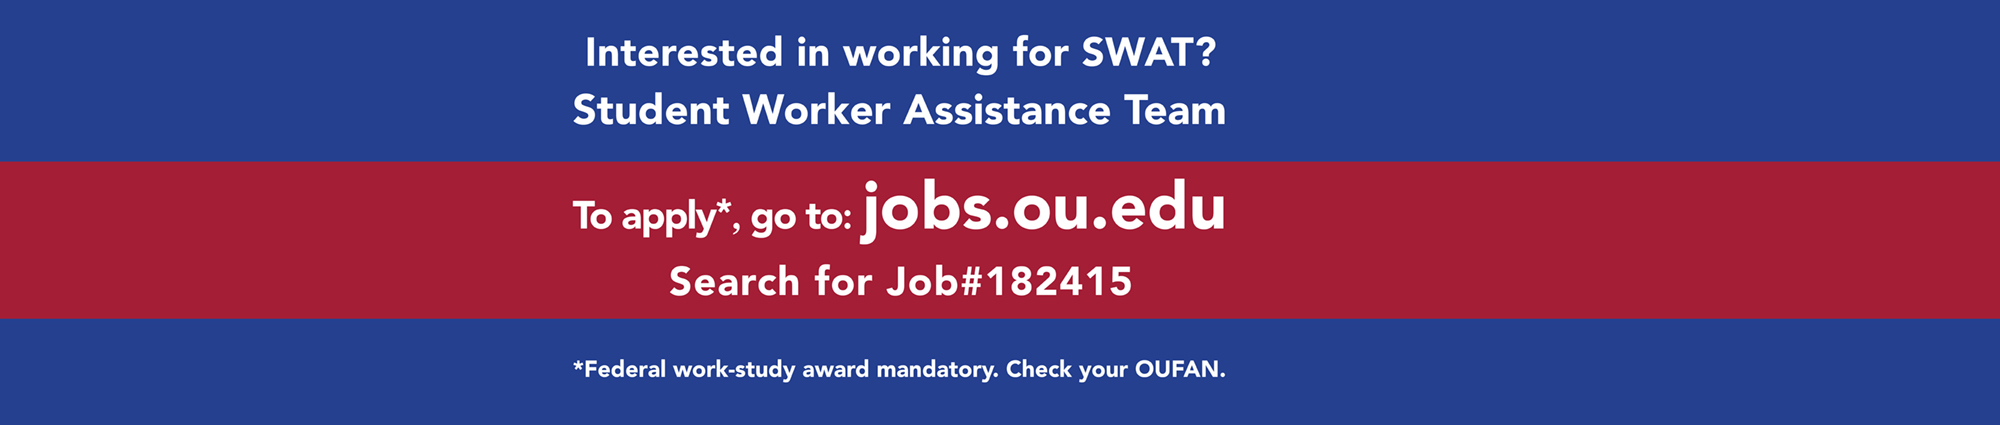 Interested in working for SWAT? Student Worker Assistance Team To apply* go to jobs.ou.edu Search for Job#182415 Federal work-study award mandatory. Check your OUFAN.